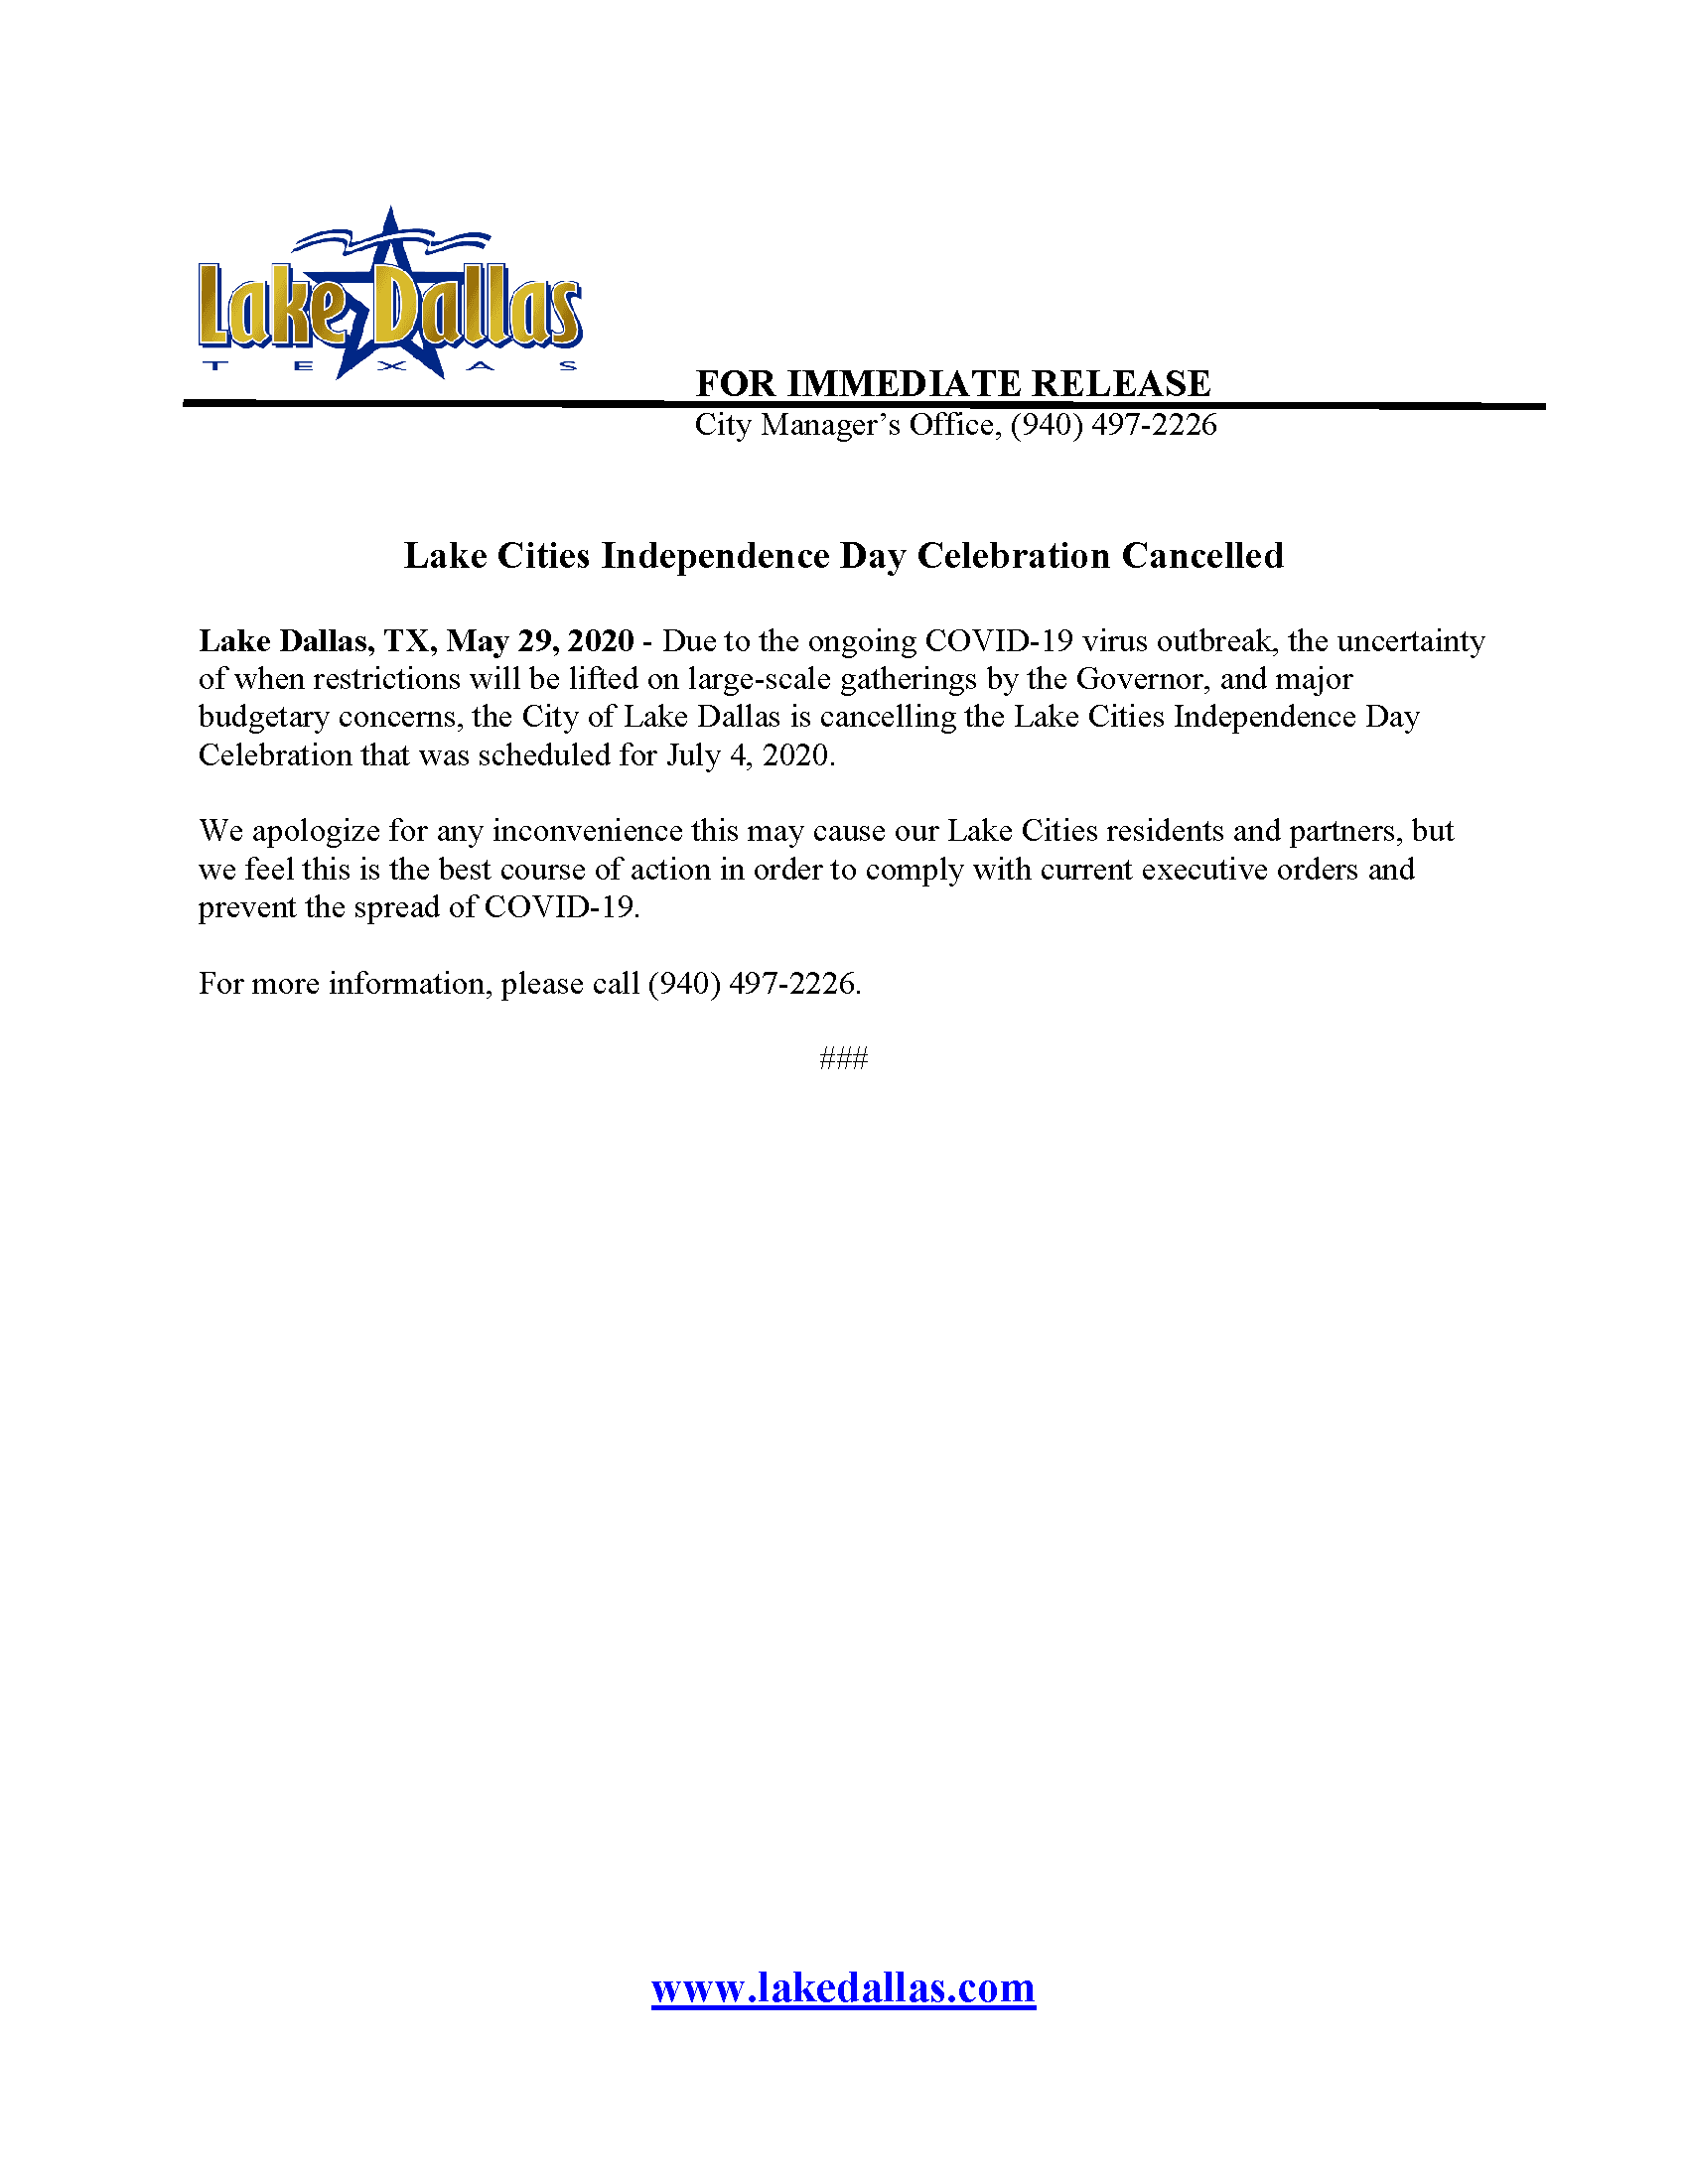 Press Release - Lake Cities Independence Day Celebration Cancelled (May 28 2020)